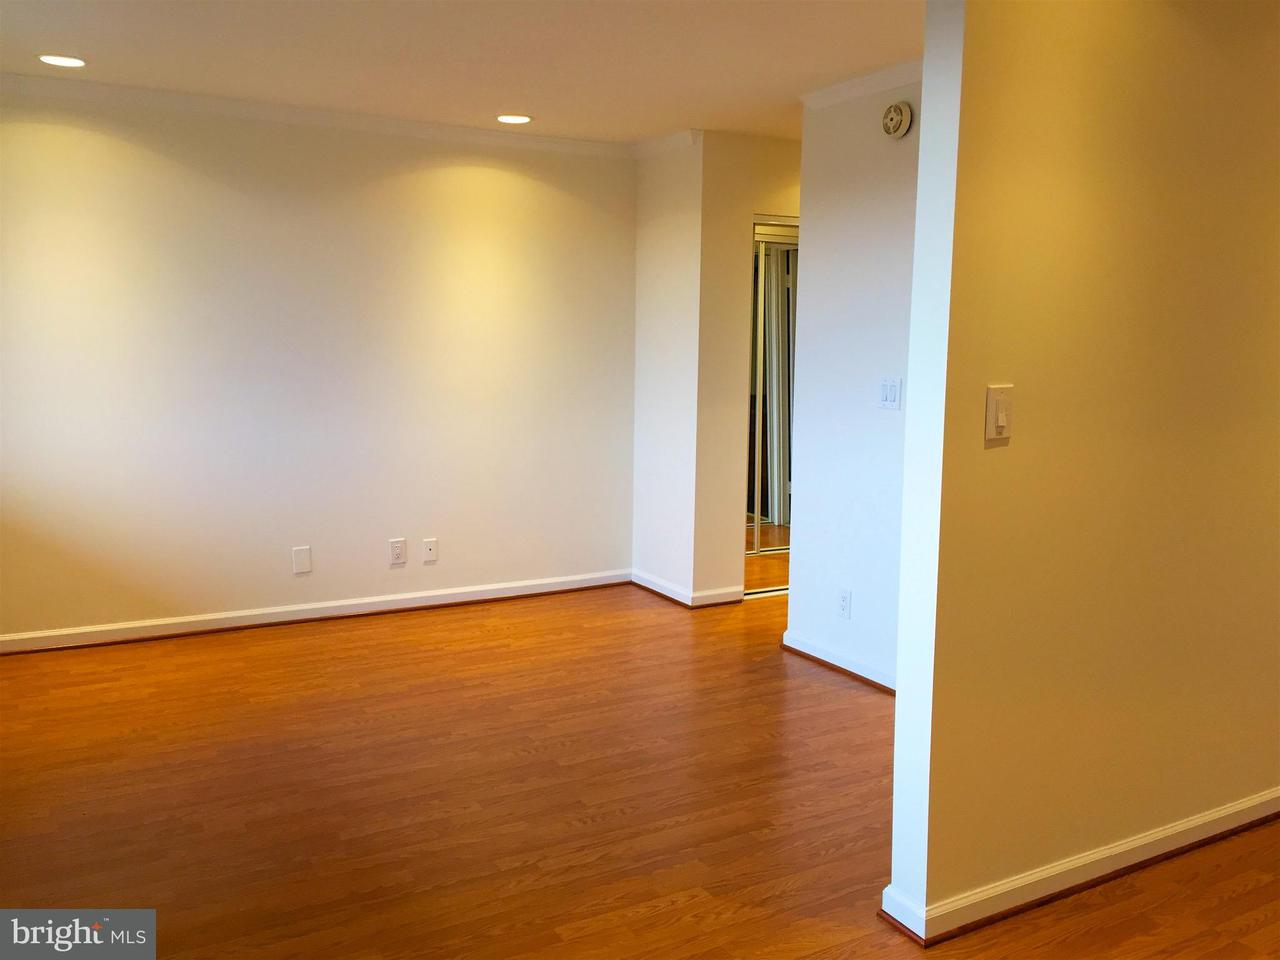 Condominium for Rent at 111 Hamlet Hill Rd #1301 Baltimore, Maryland 21210 United States